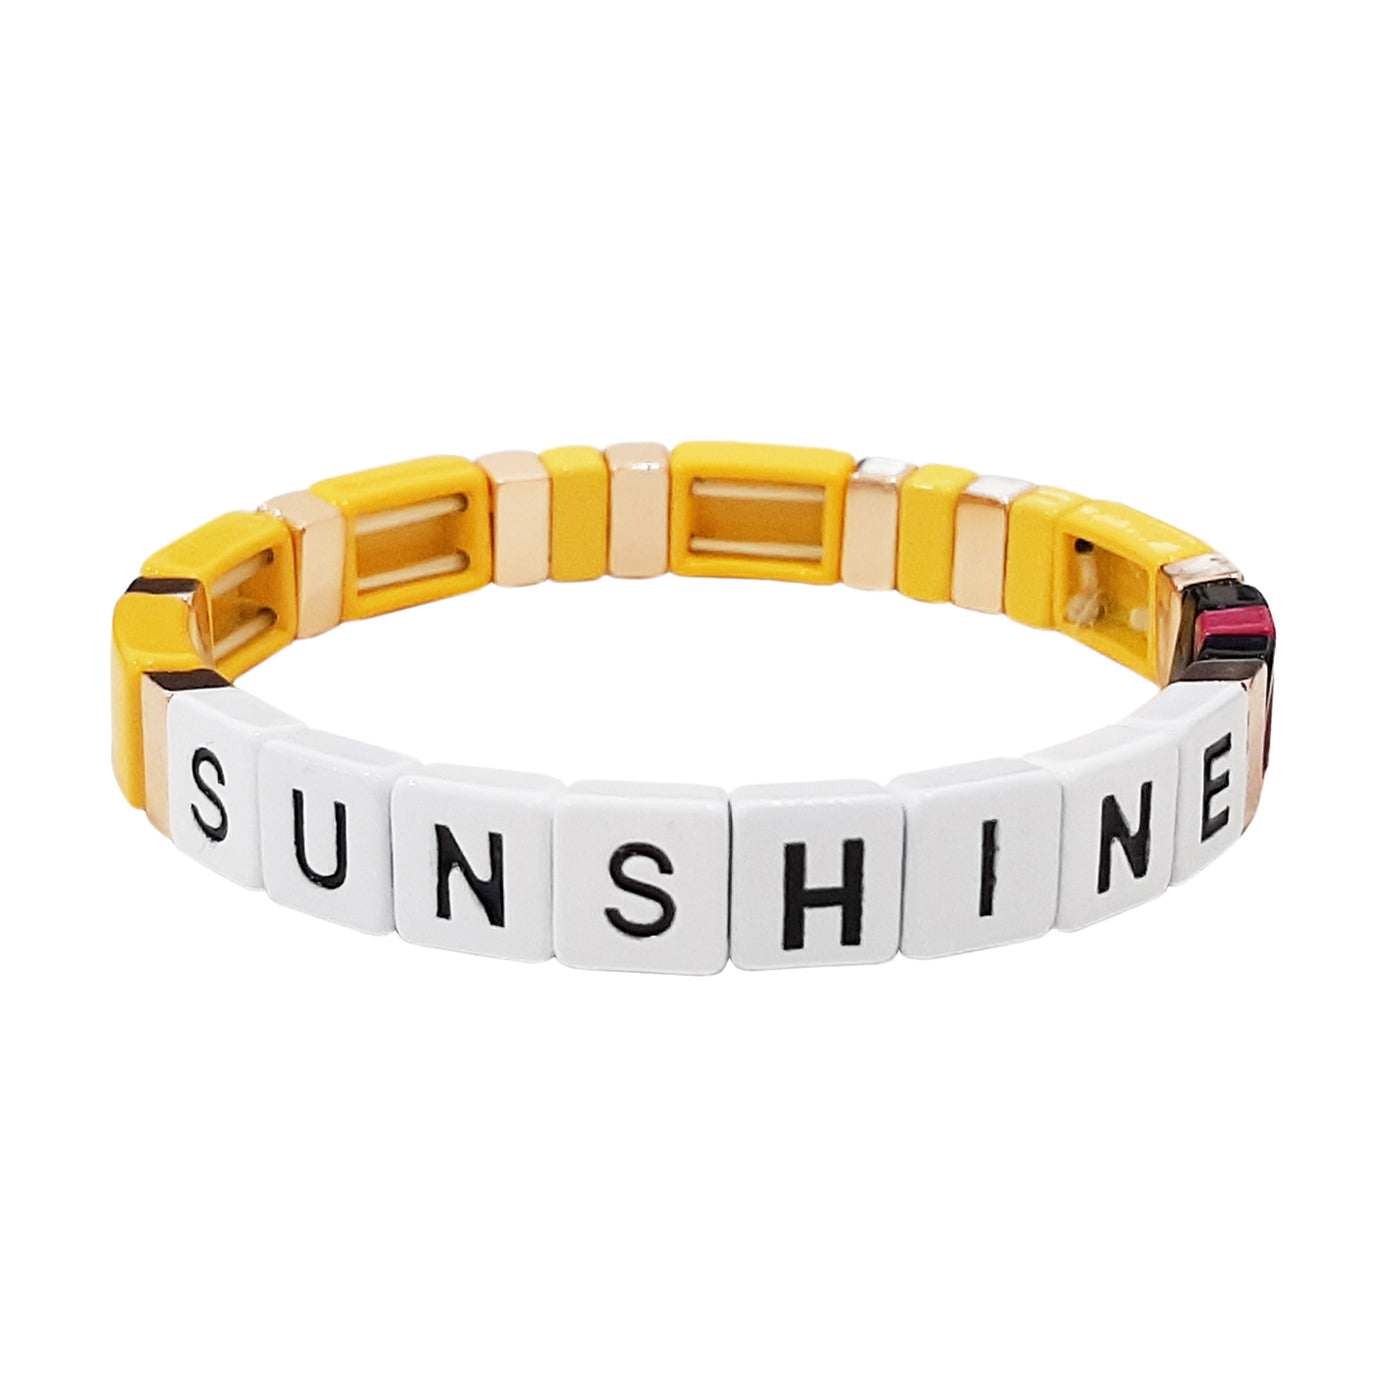 Sunshine Alloy Beaded Stretch Bracelet